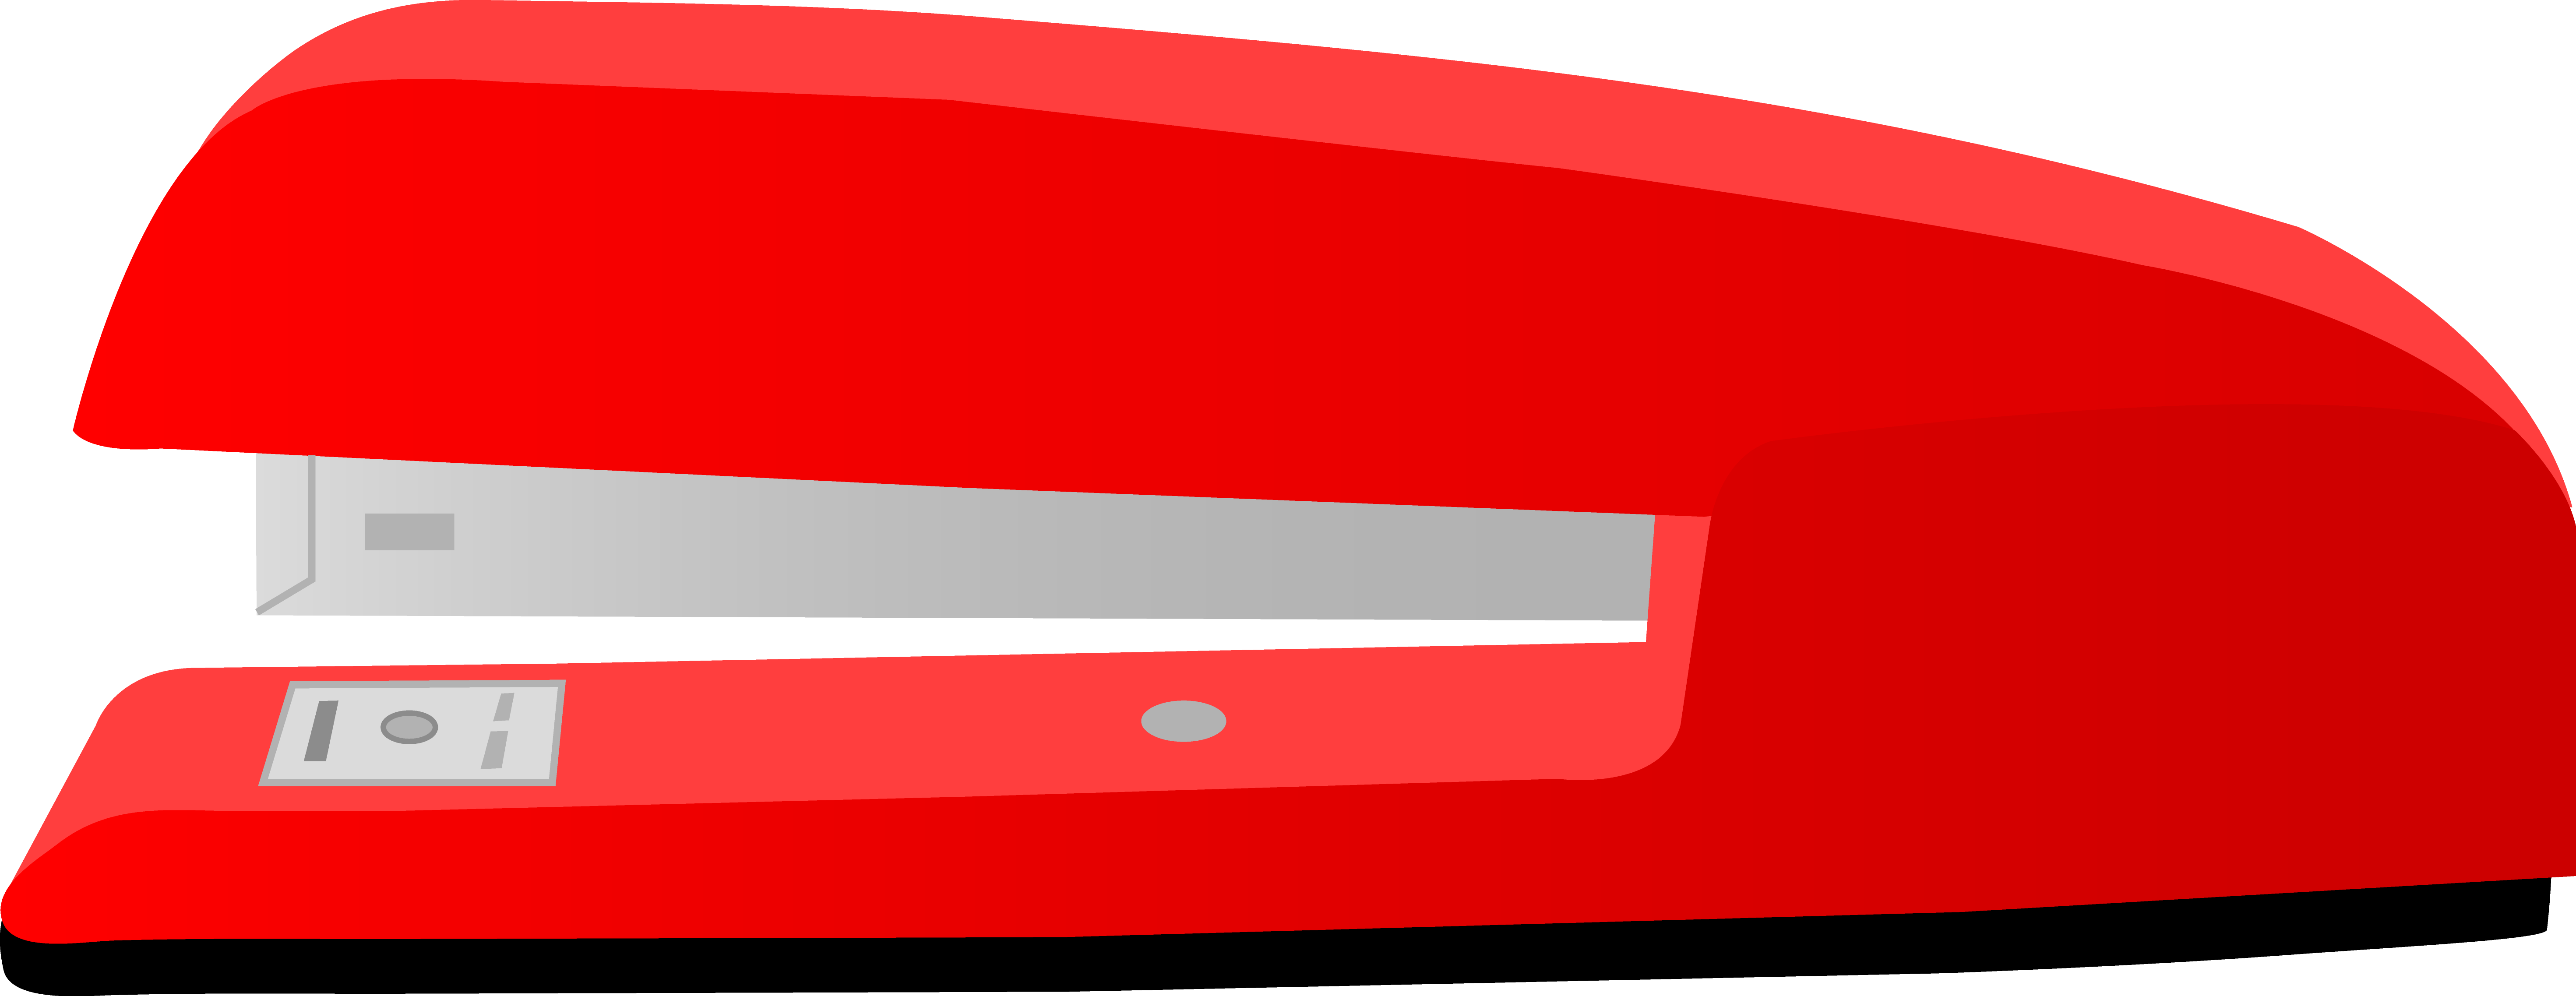 Free Stapler Cliparts, Download Free Clip Art, Free Clip Art.